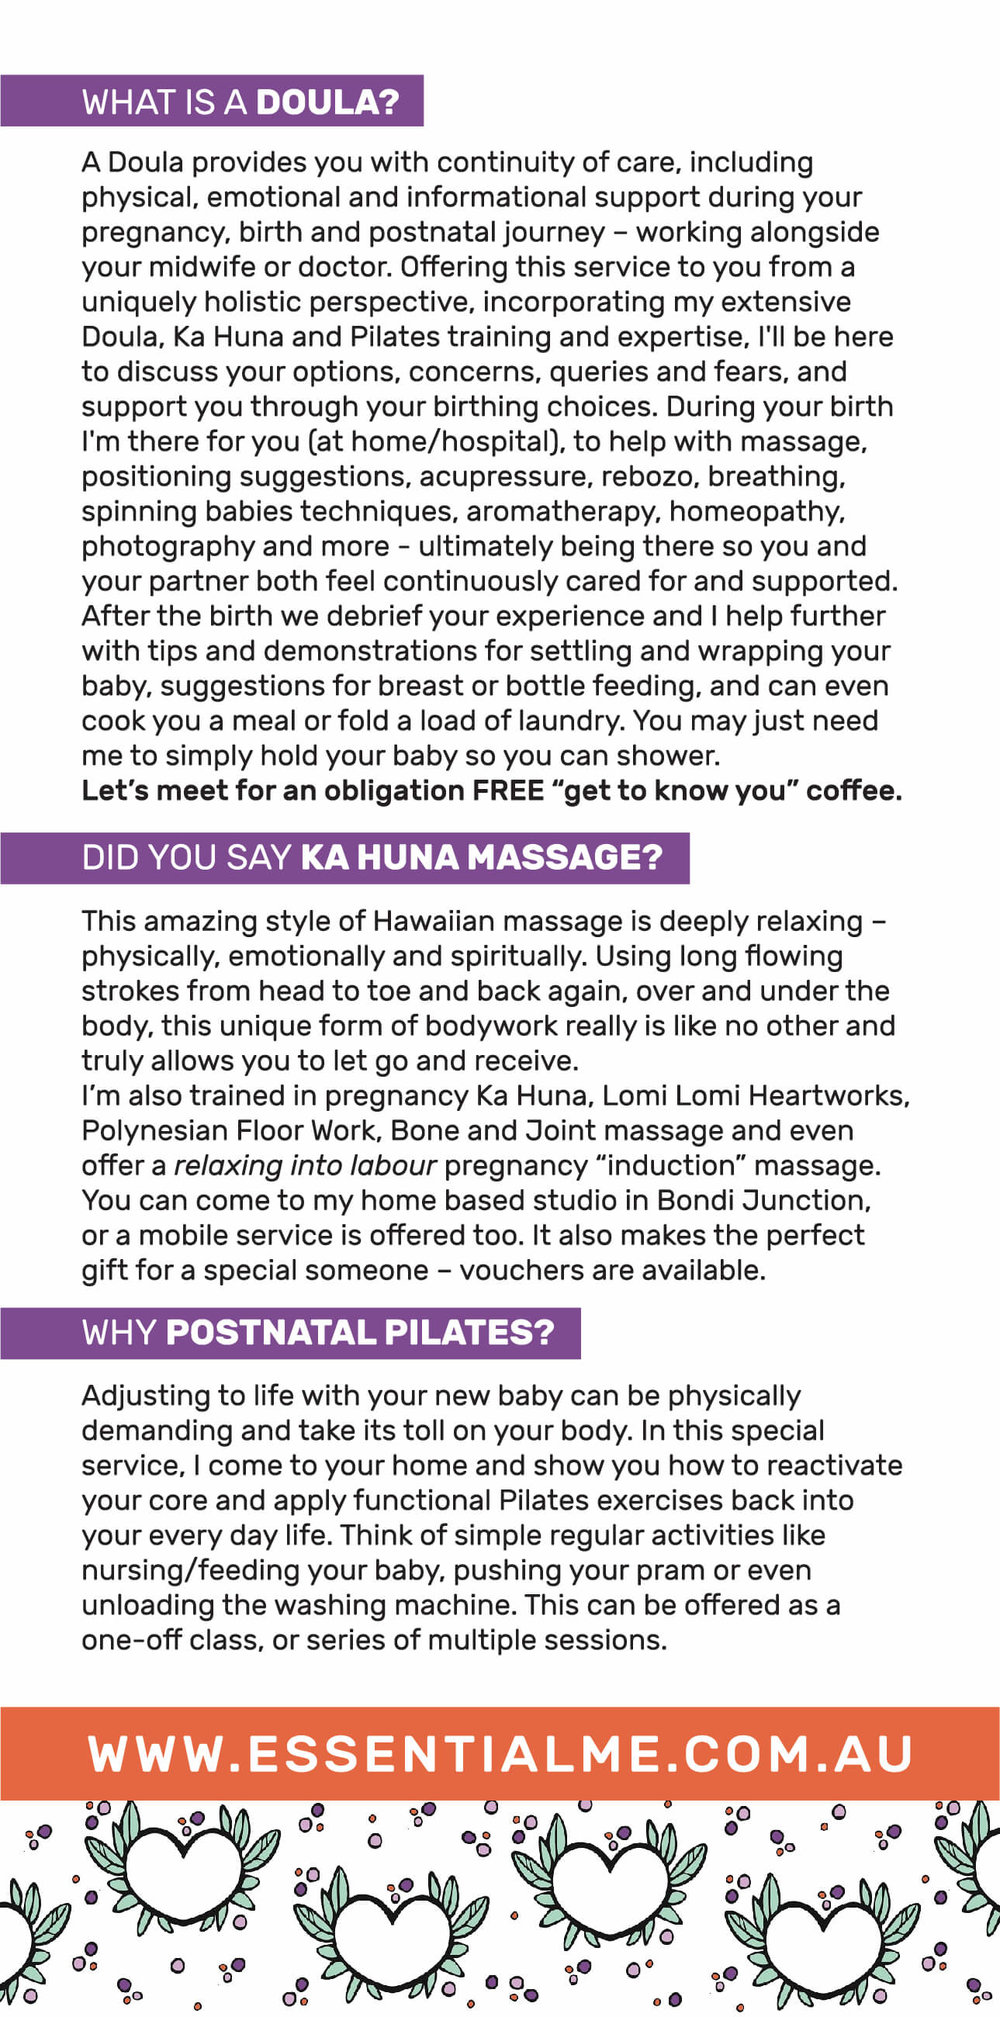 Doula Flyer Sydney ka huna massage kahuna water birth vbac birth journey, what is a doula? birth support